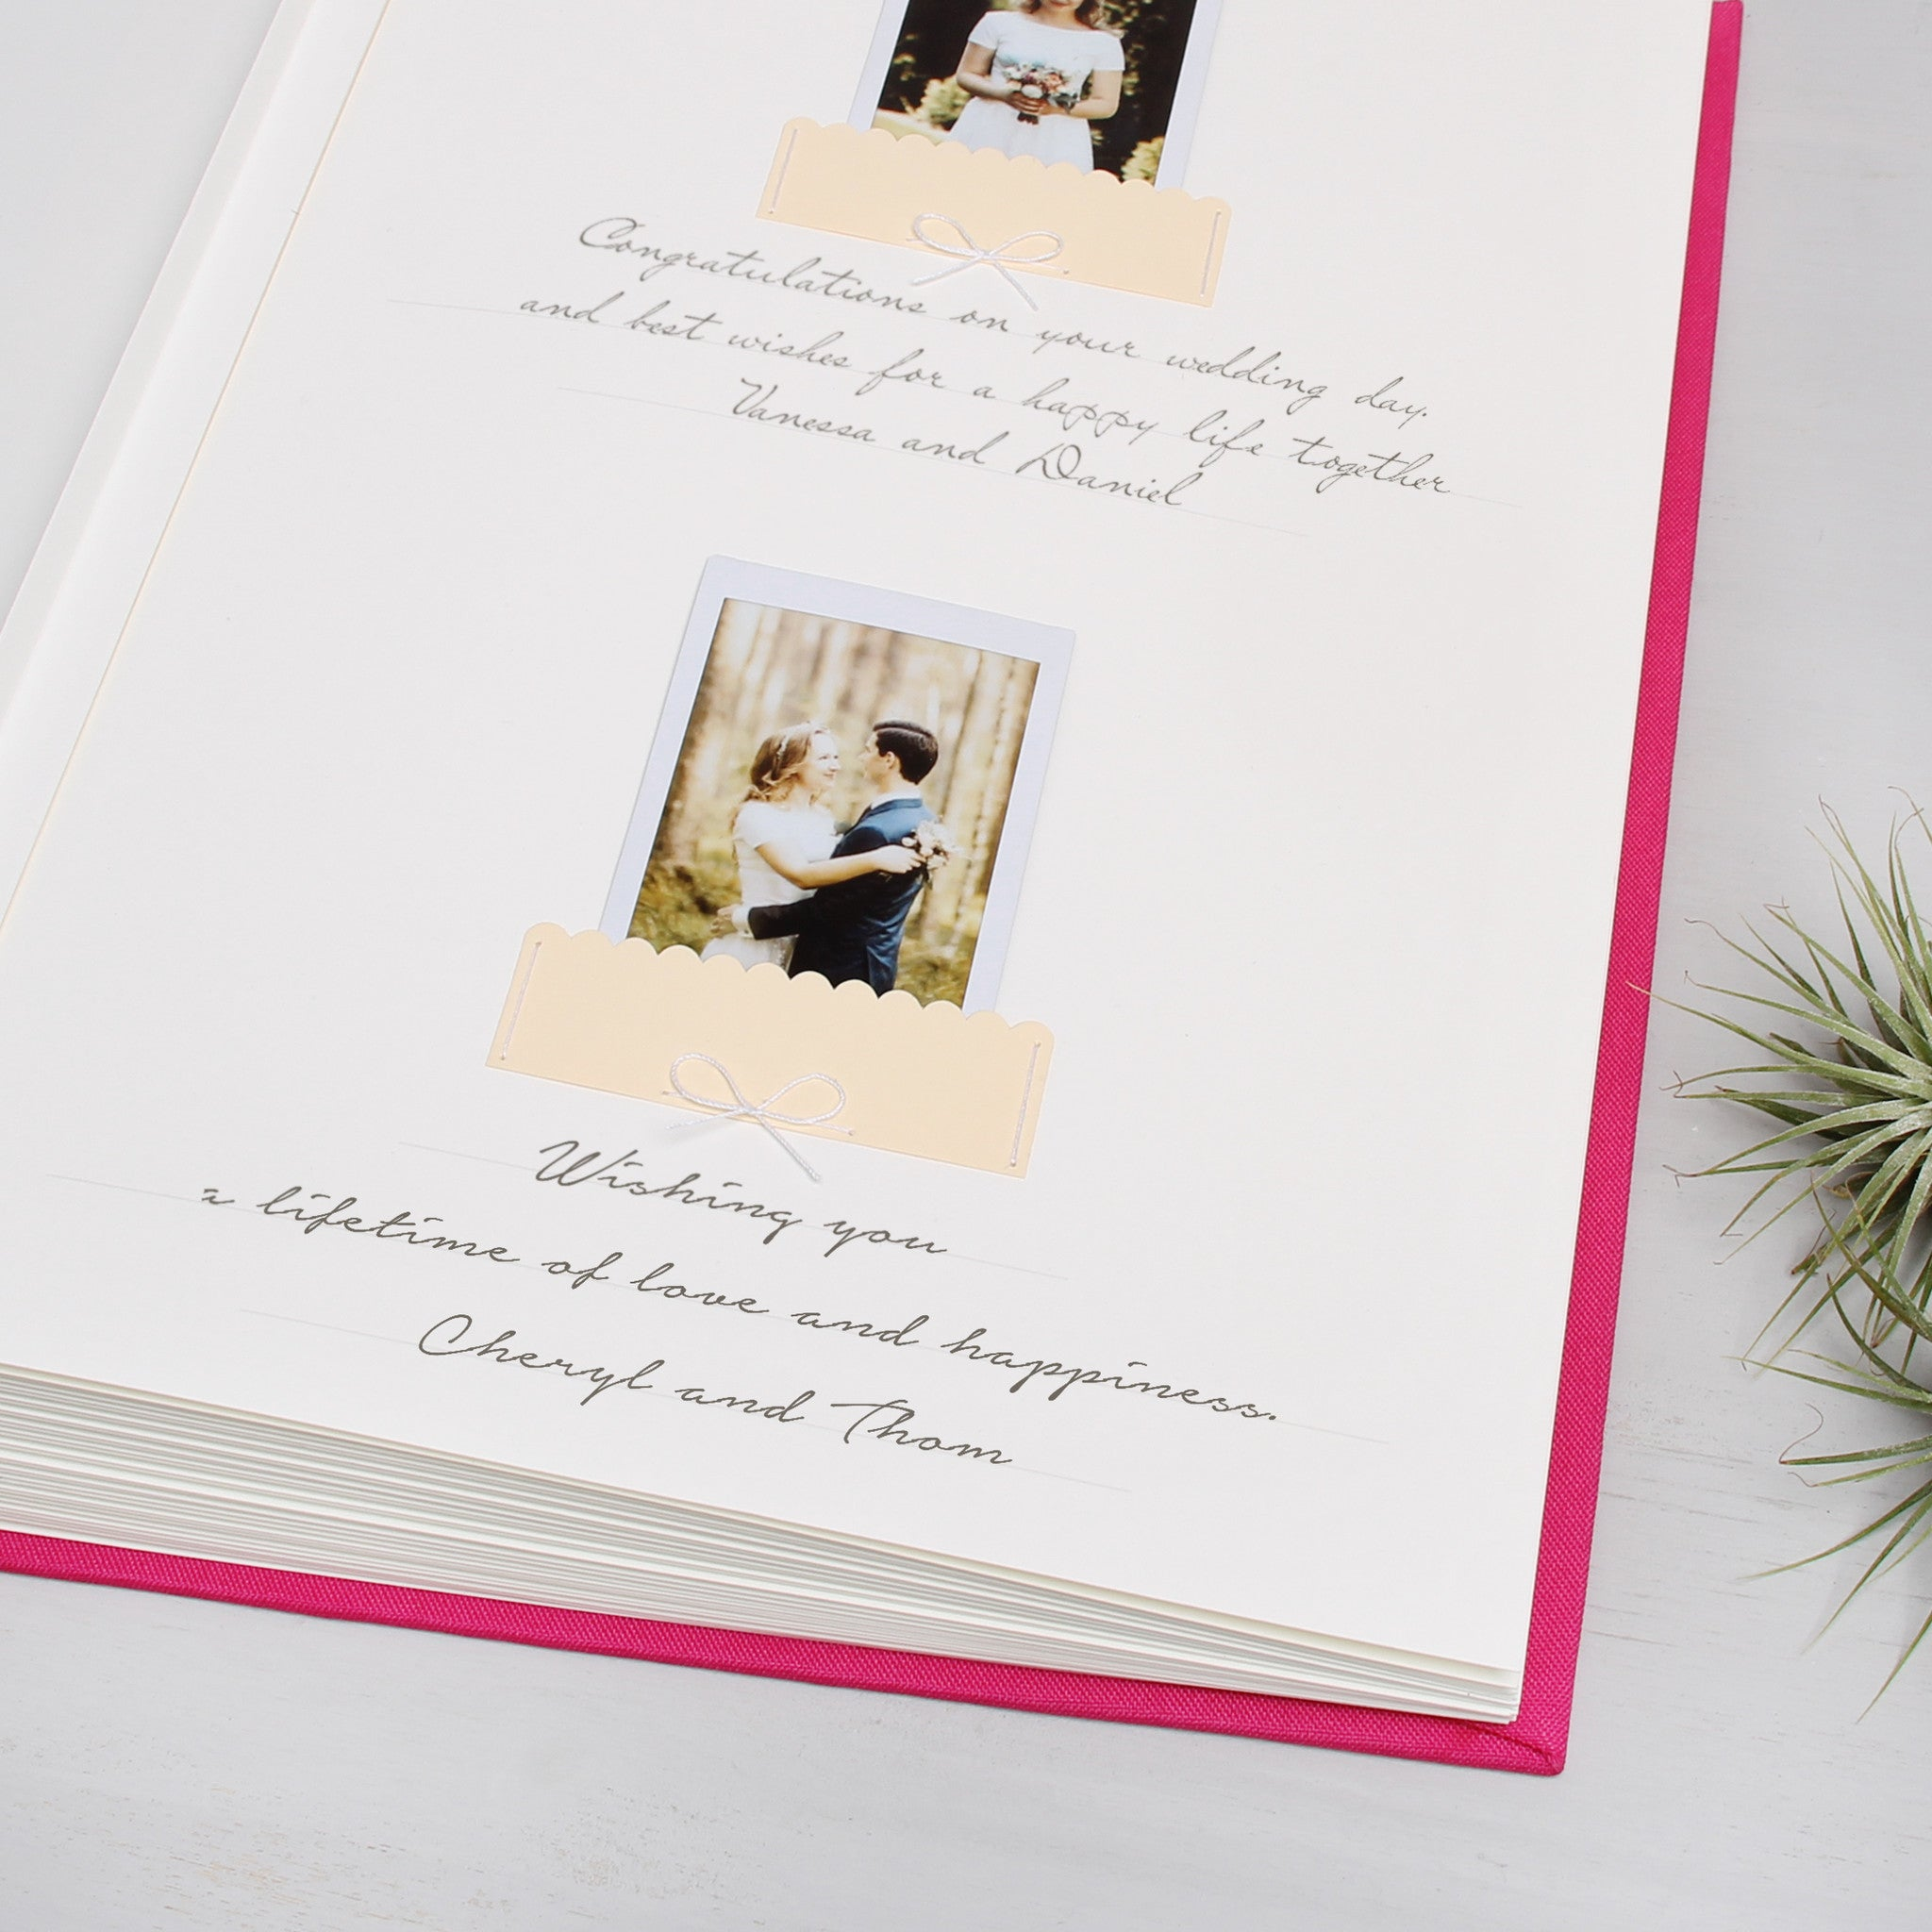 Guest Book Sign in Book Instant Album Magneta with Silver Glitter Lettering, Birthday Album by Liumy - Liumy